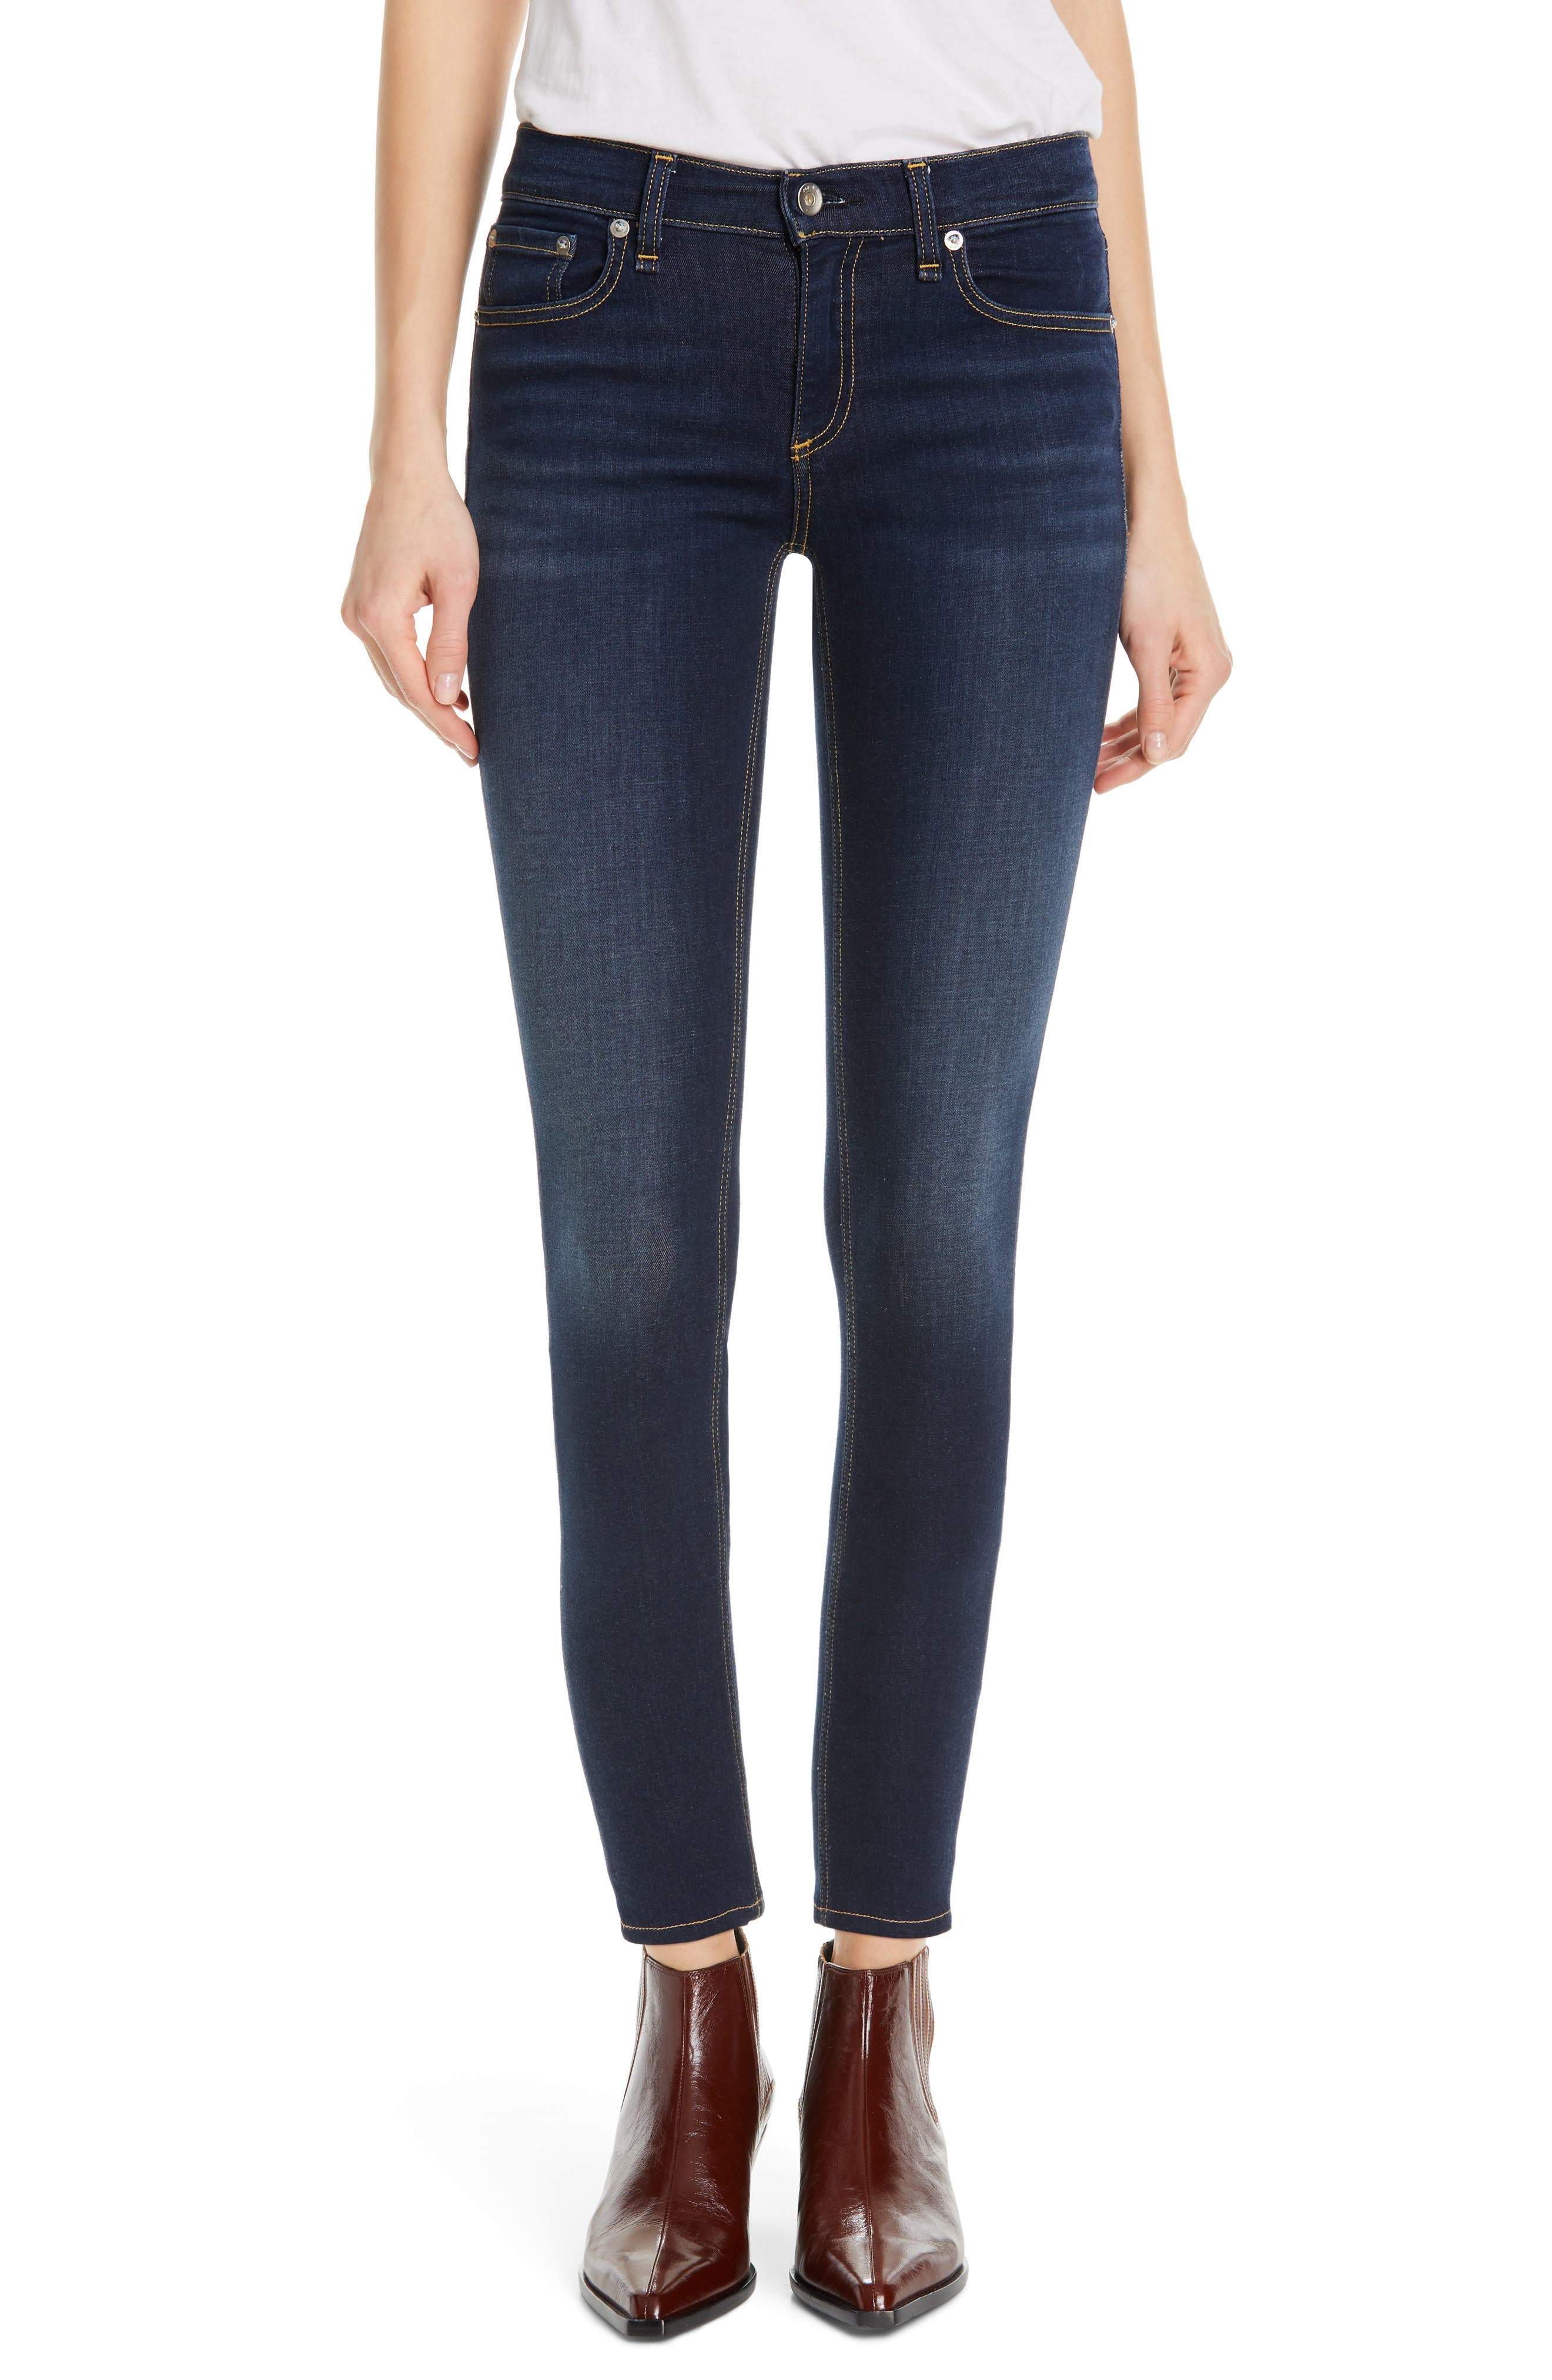 RAG & BONE Cate Ankle Skinny Jeans, Main, color, CARMEN